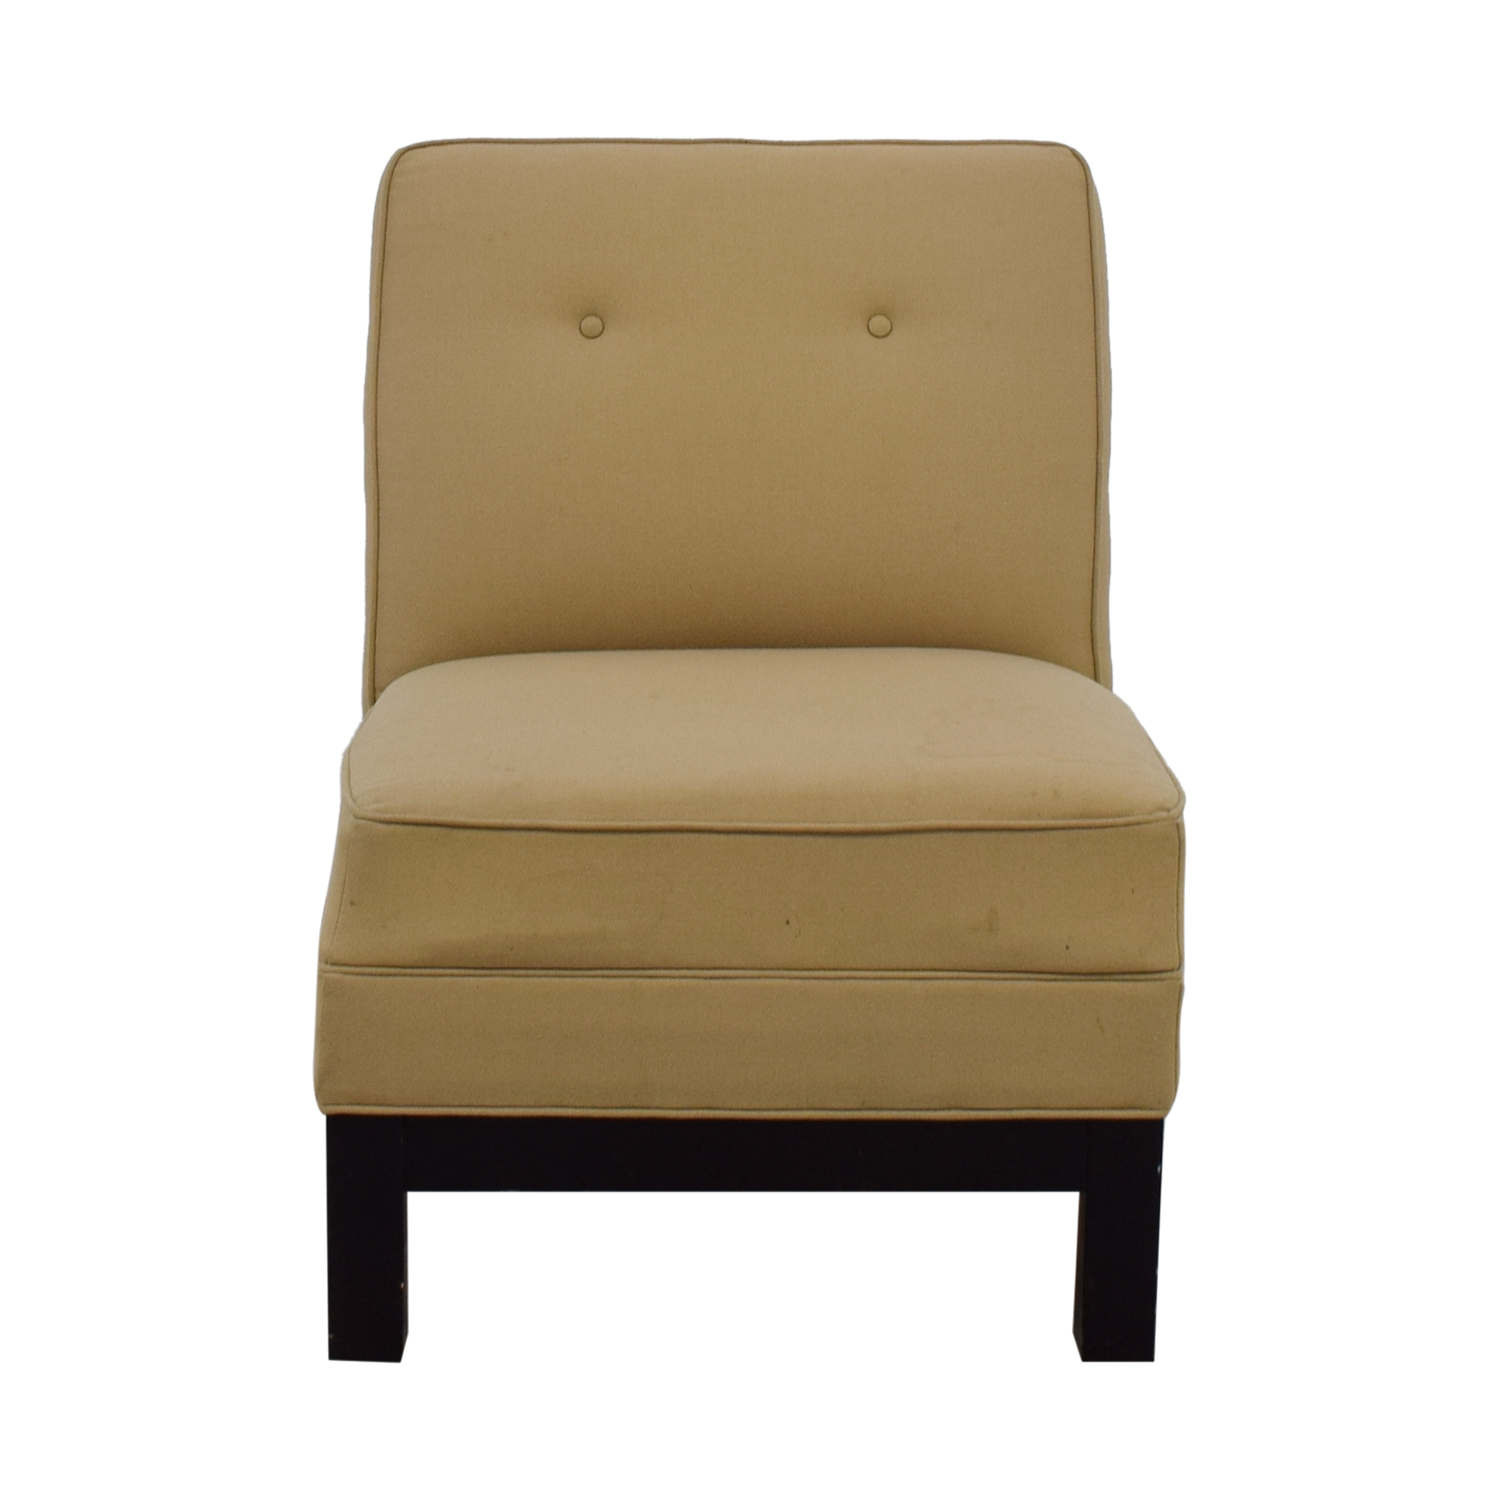 Restoration Hardware Restoration Hardware Beige Lounge Chair price